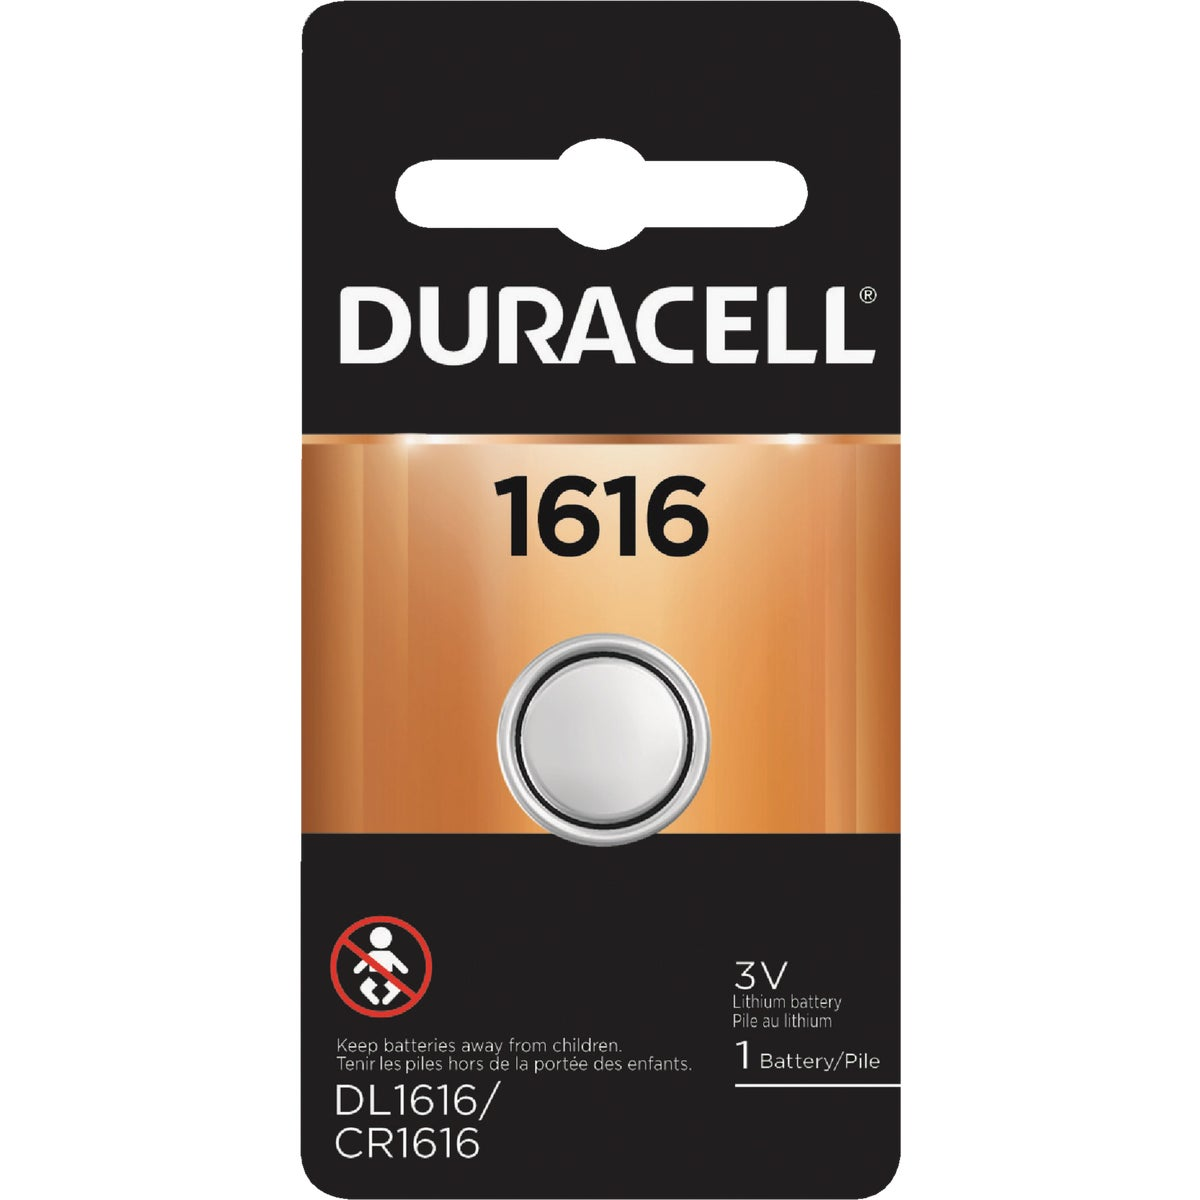 DL1616 3V SECUR BATTERY - 43487 by P & G  Duracell